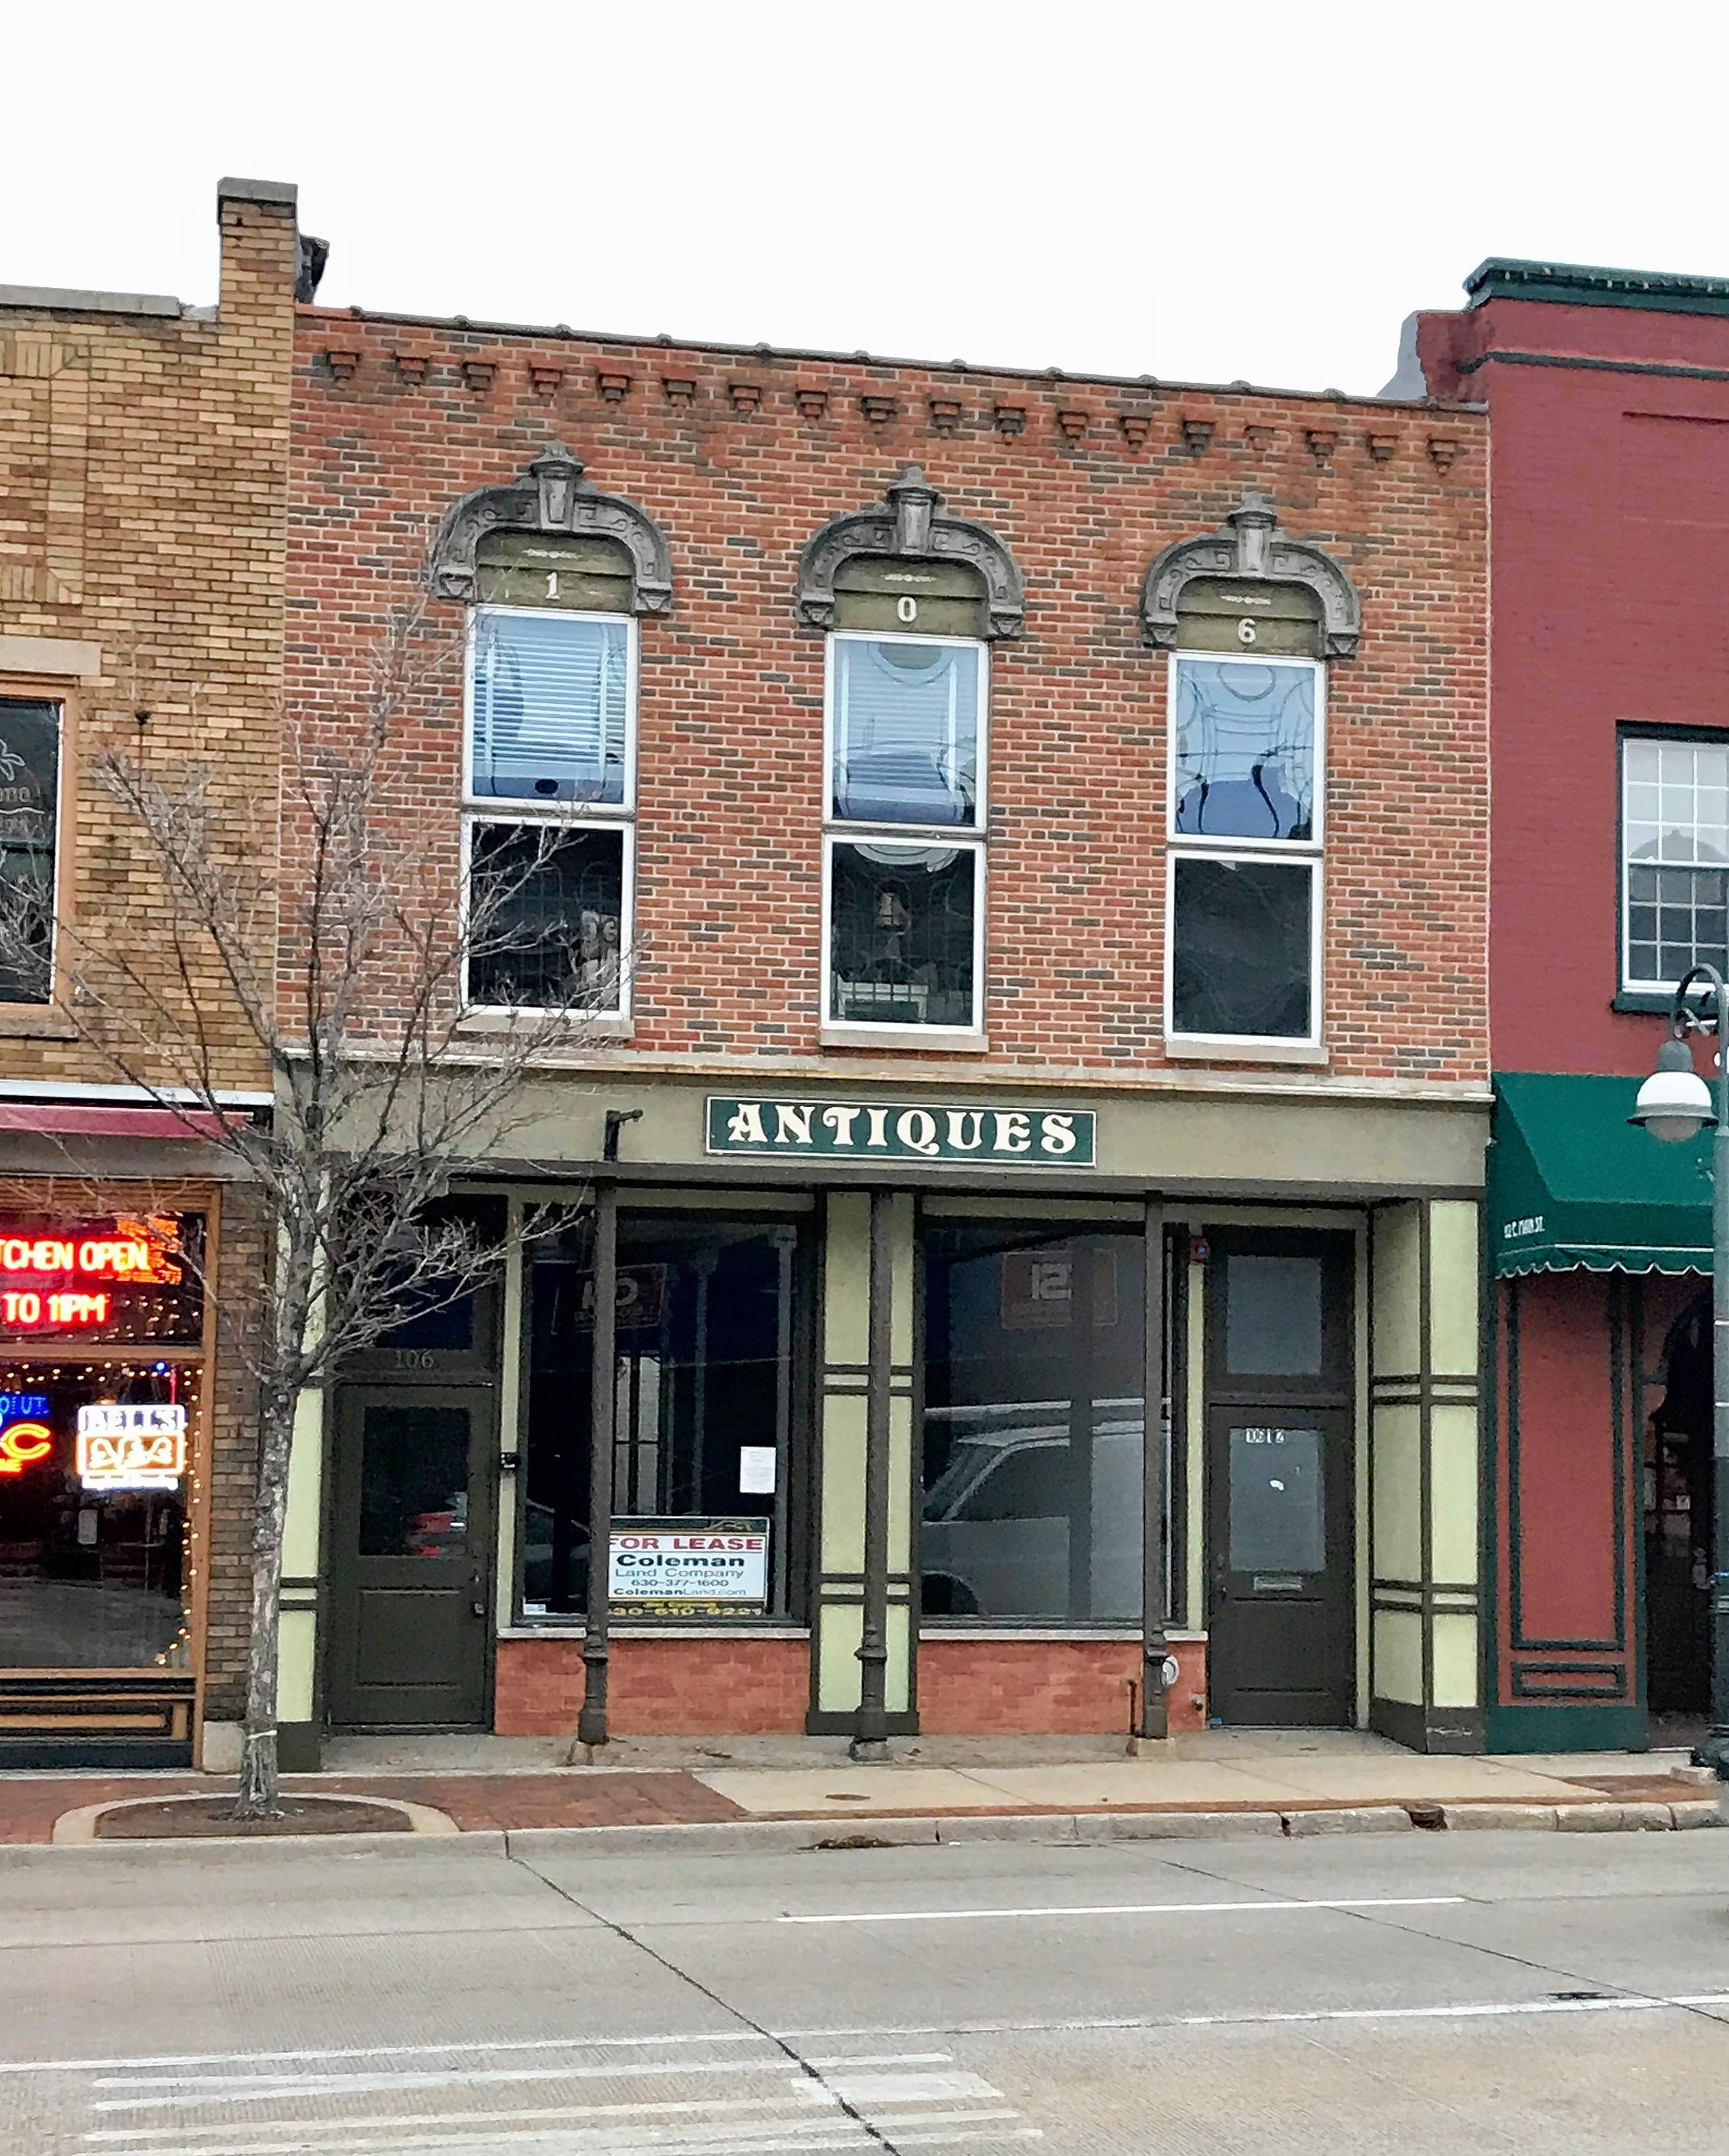 A new wine tasting room, called 100 Grapes, is expected to open next year in a vacant storefront at 106 E. Main St. in downtown St. Charles.